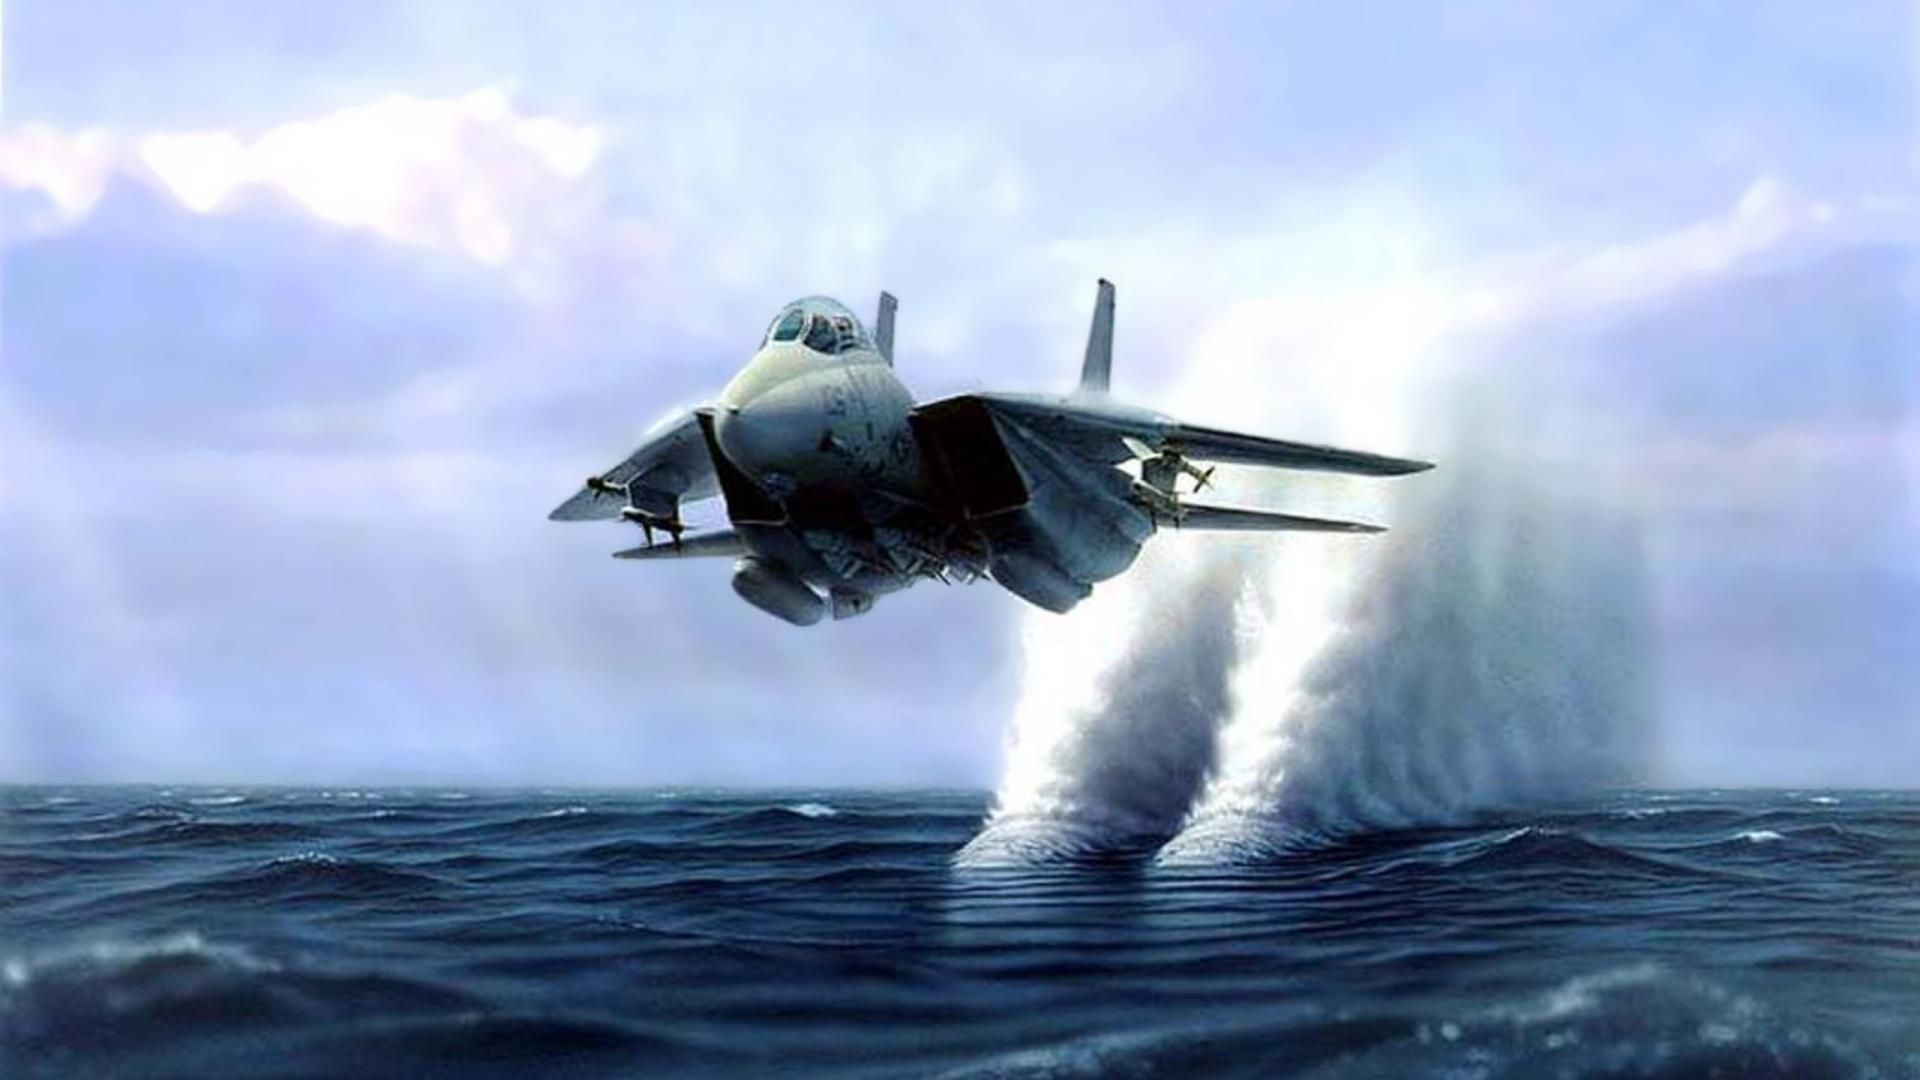 Coolairplanespictures super cool fighter plane hd wallpapers for coolairplanespictures super cool fighter plane hd wallpapers for free to download voltagebd Choice Image